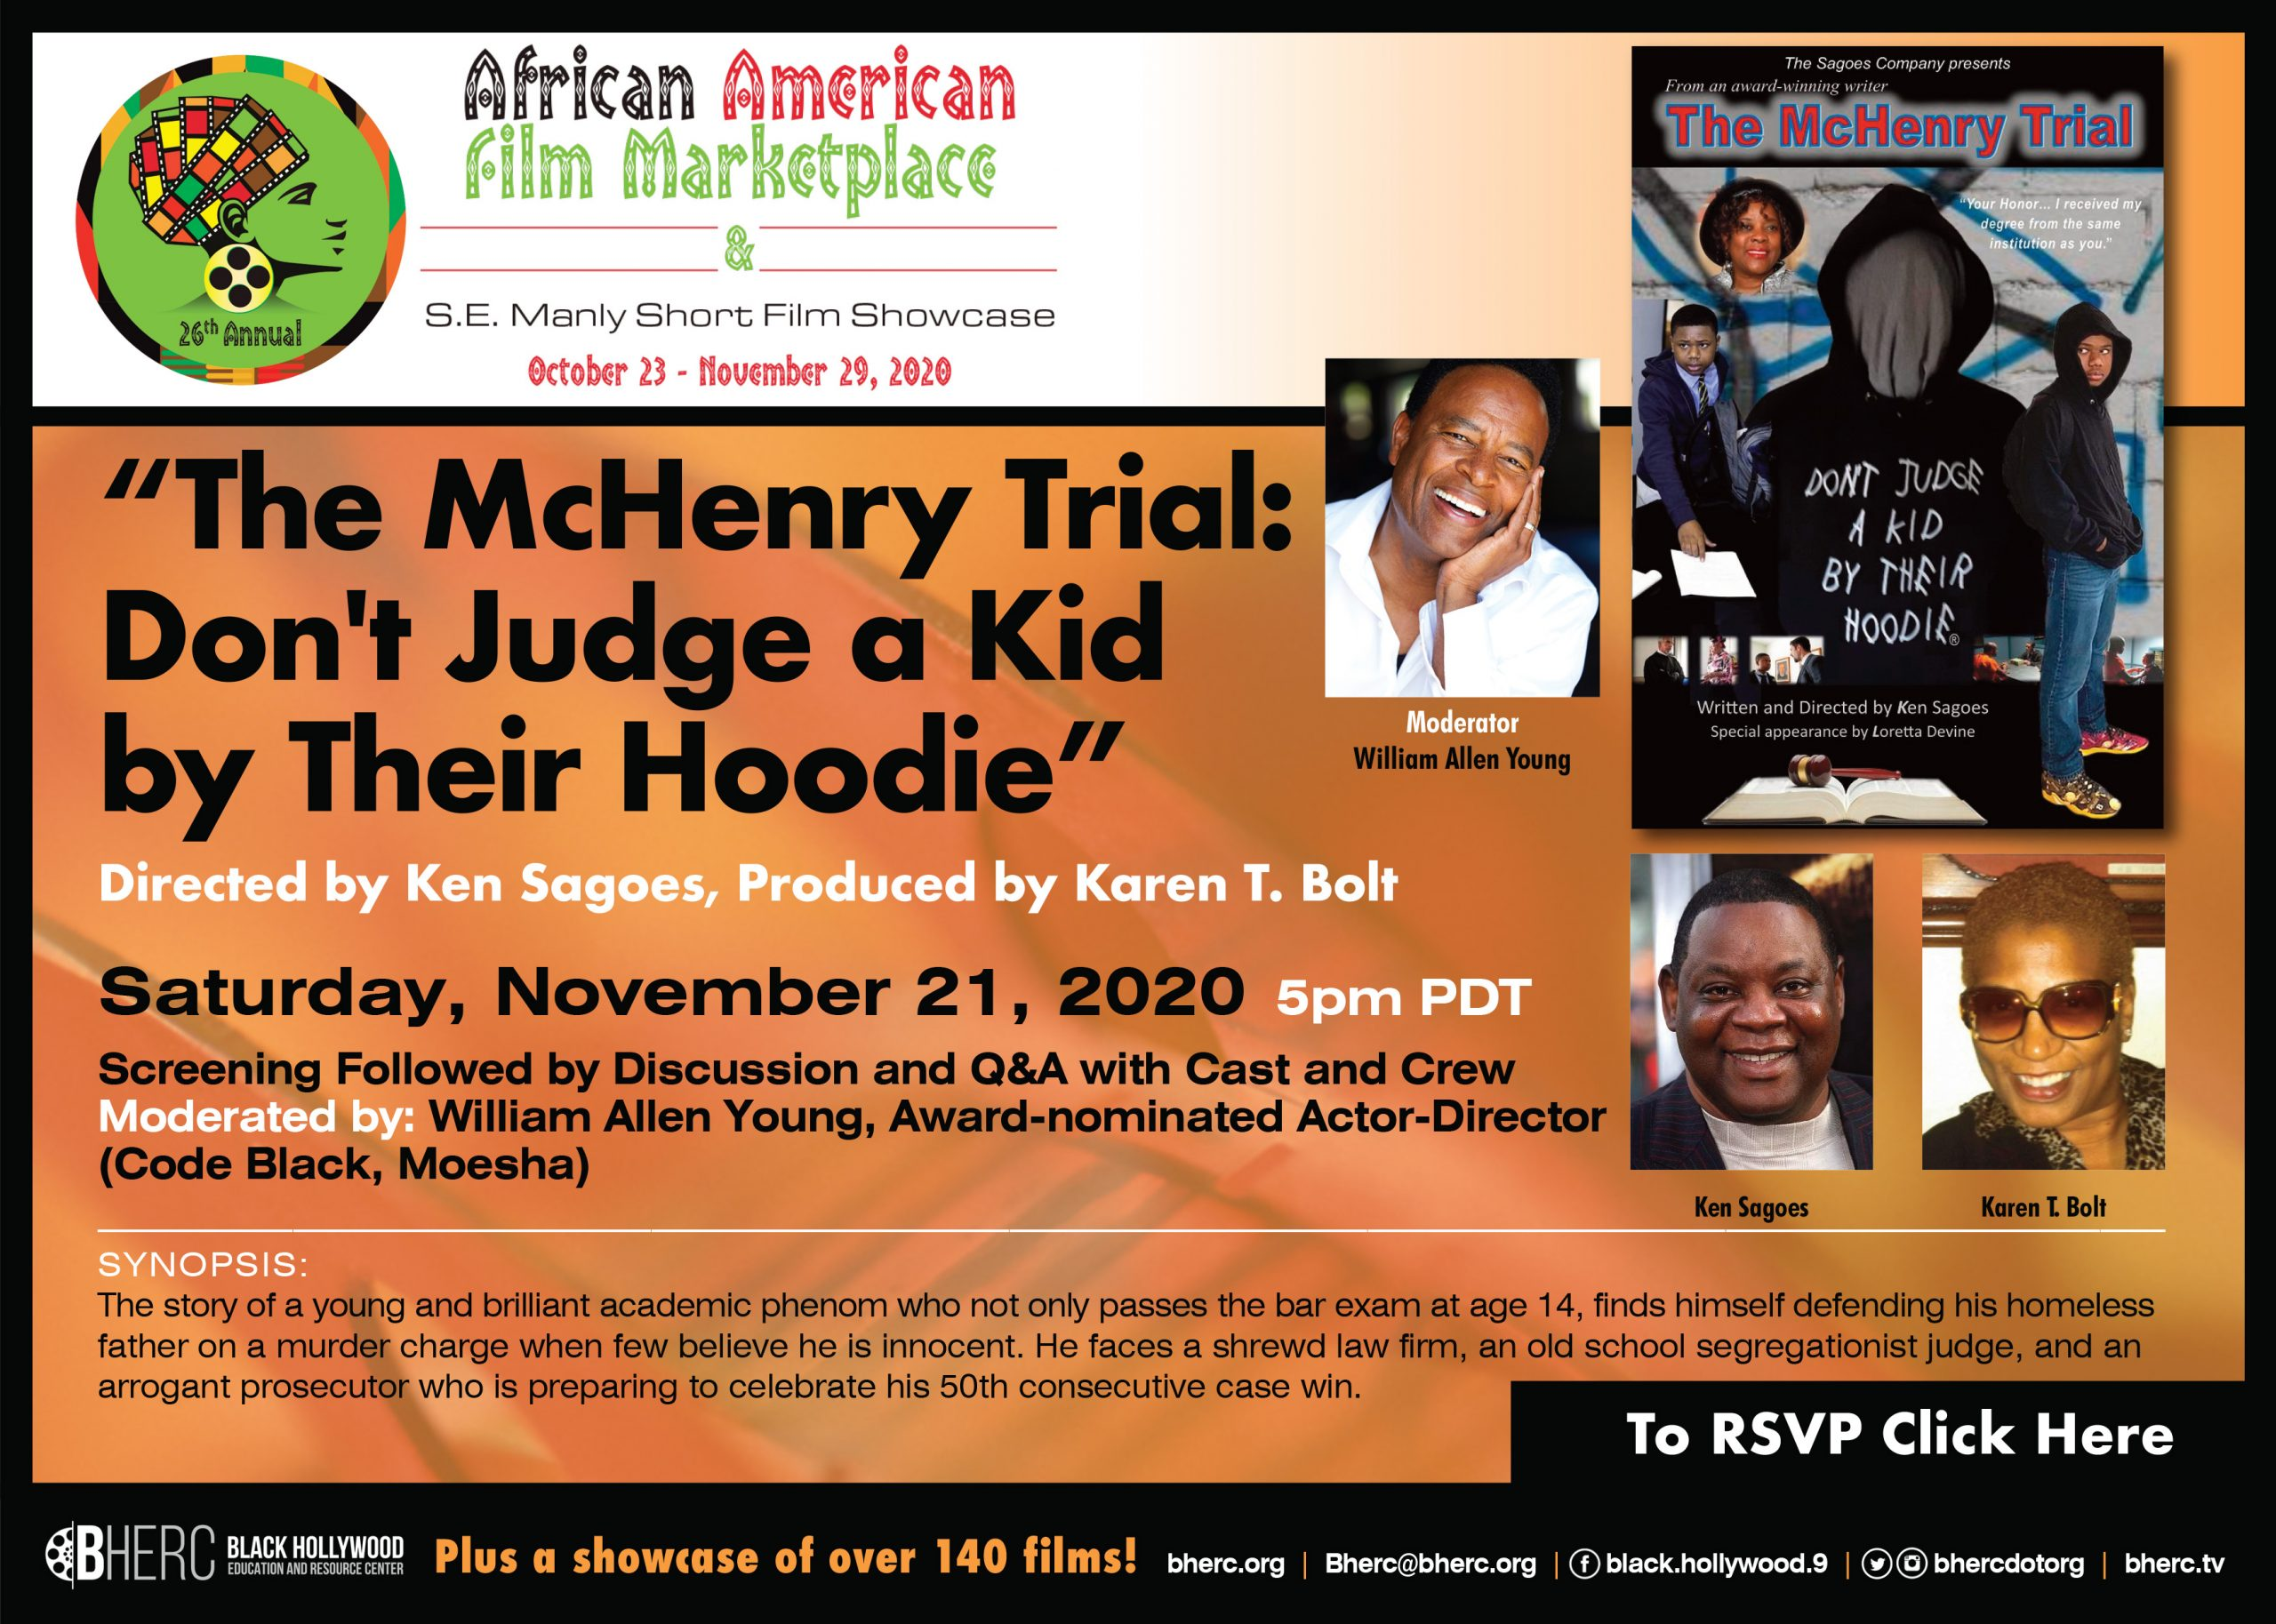 The McHenry Trial, Don't Judge A Kid By Their Hoodie